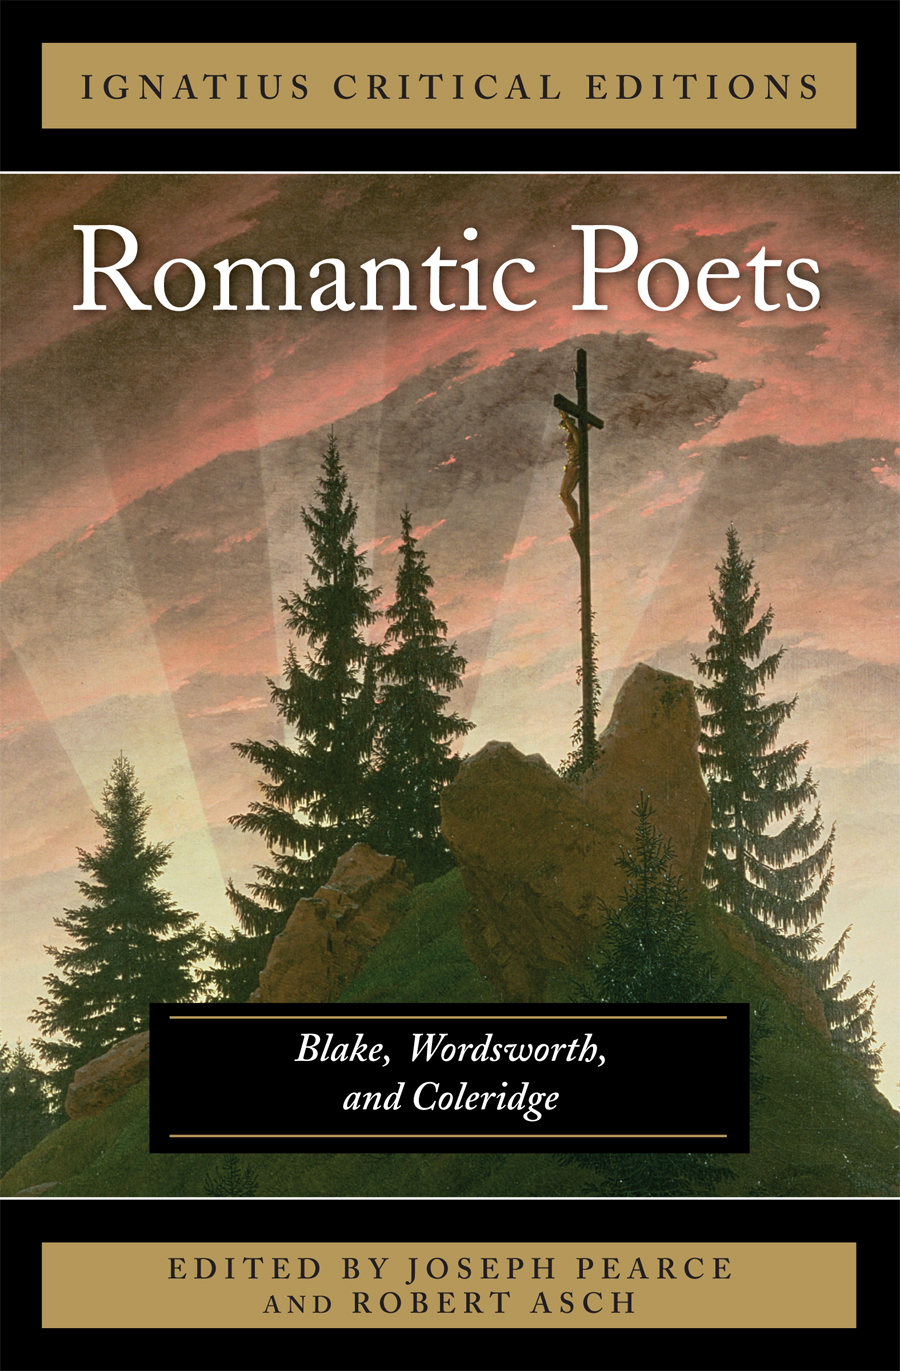 The Romantic Poets Blake, Wordsworth and Coleridge